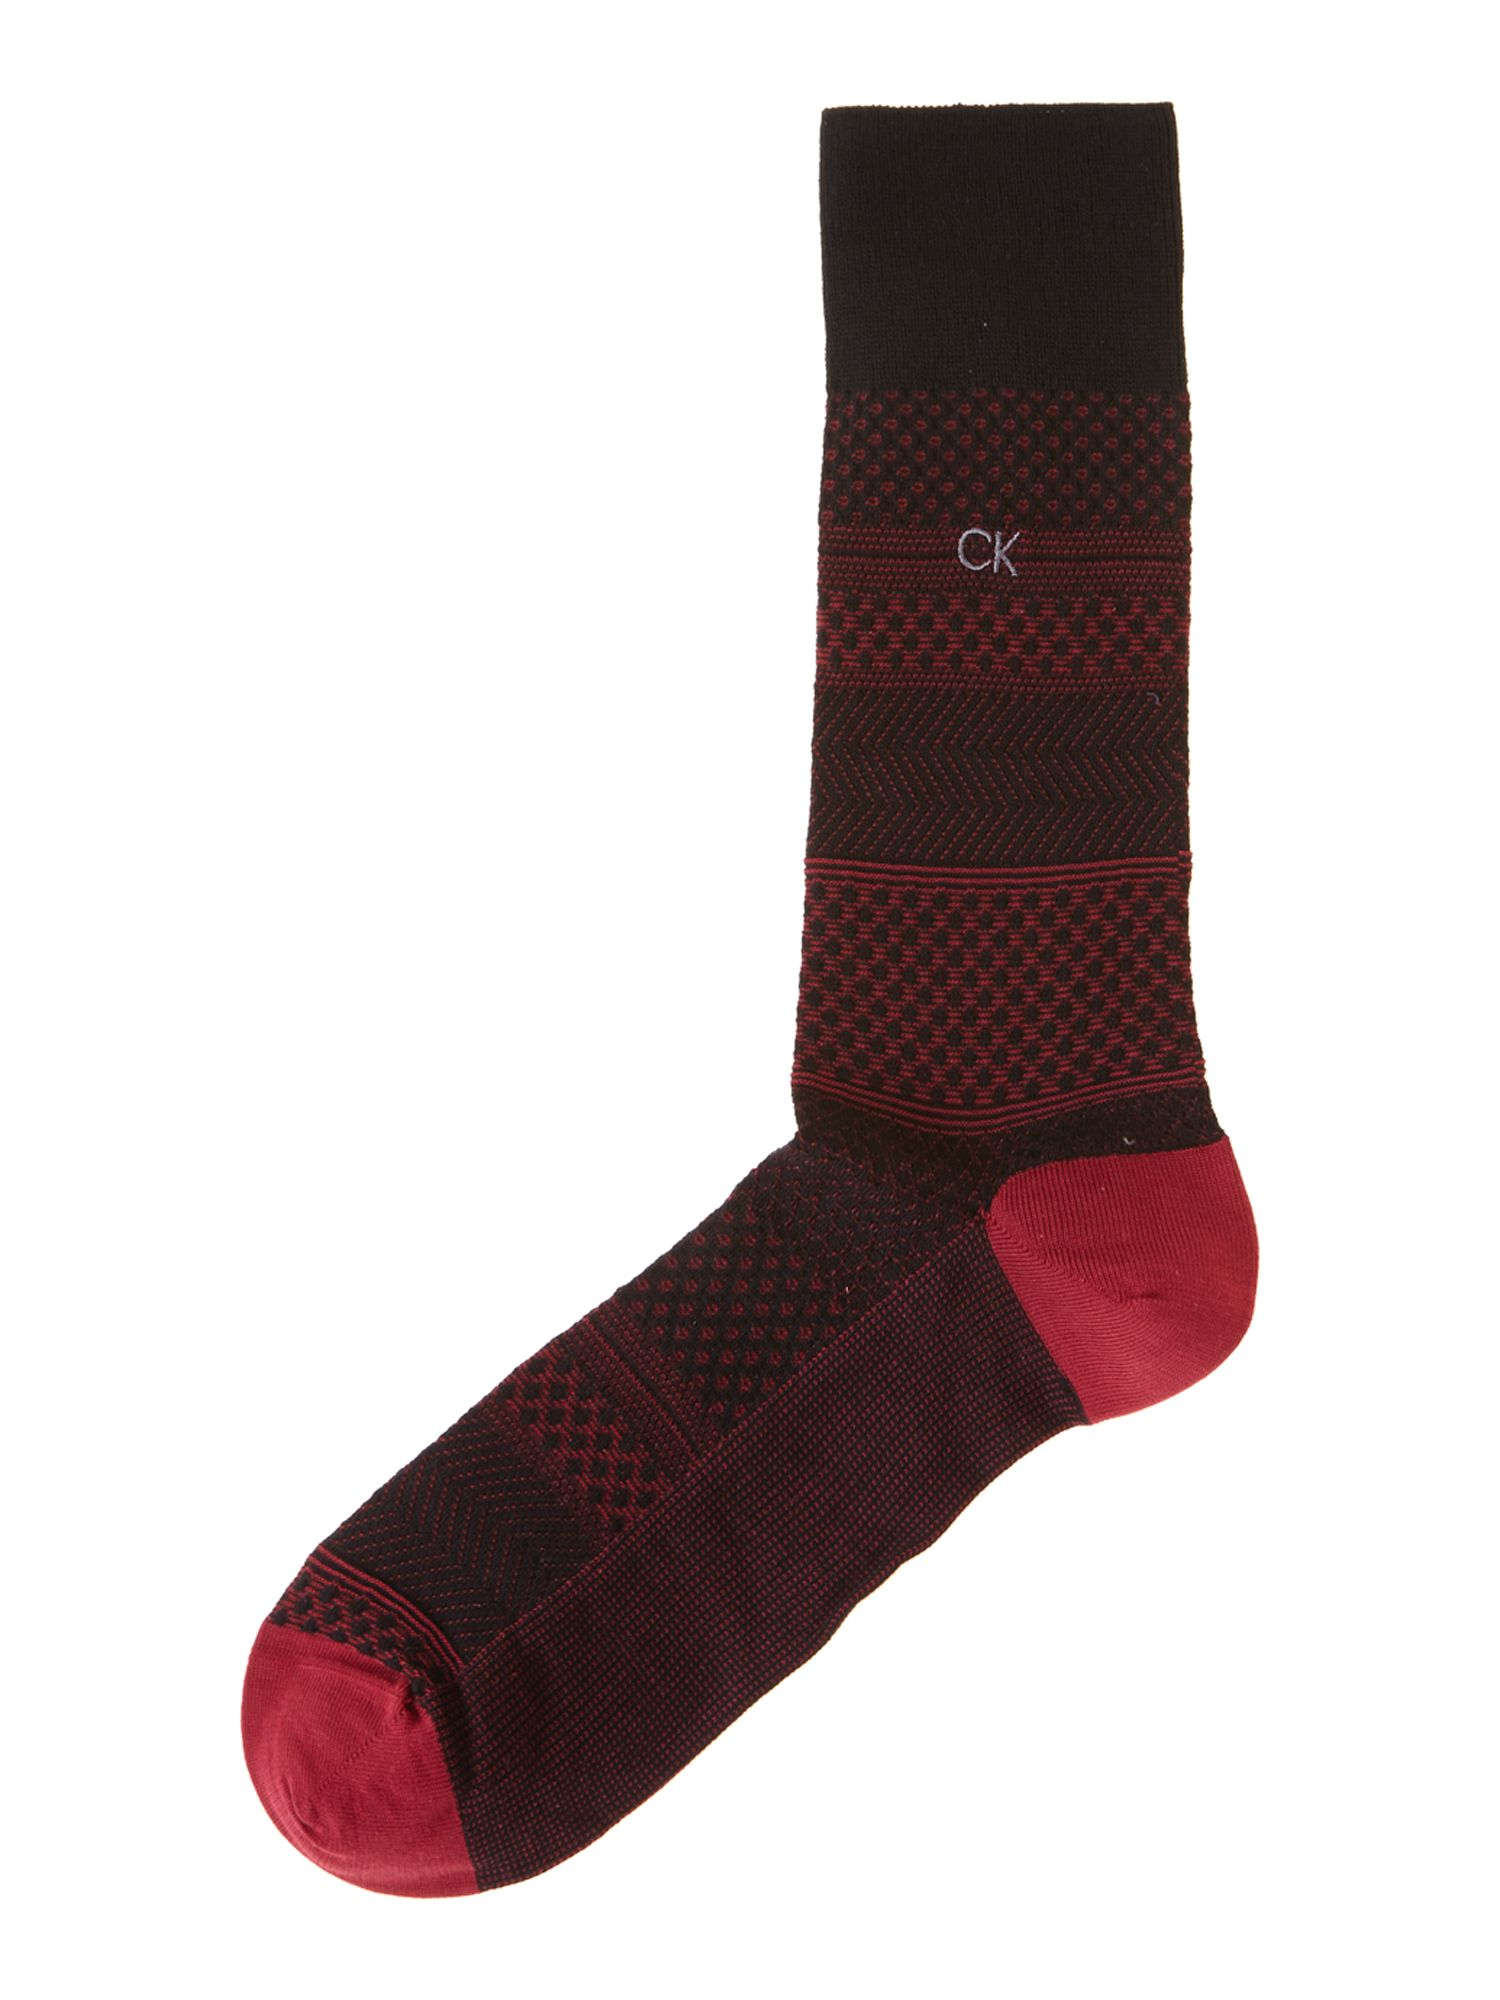 Textured jaquard sock